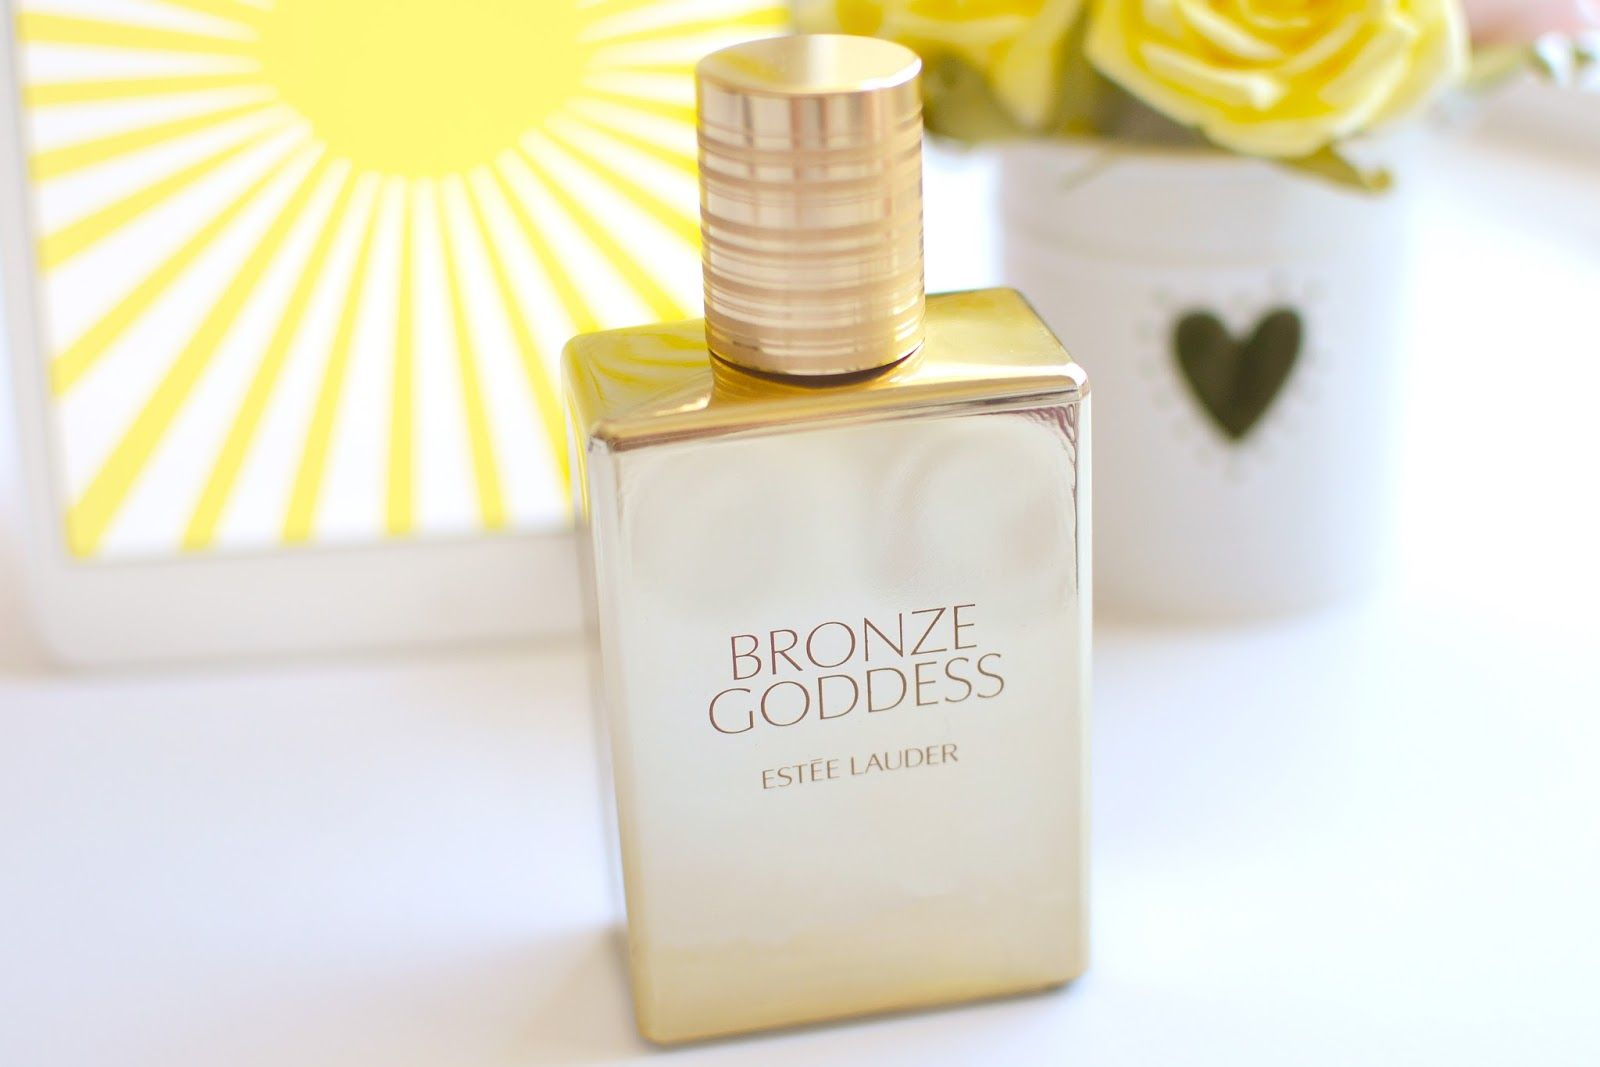 #EsteeLauder bronzed goddess skinscent review  #beautyblog #summer #coconuts #bronzegoddess